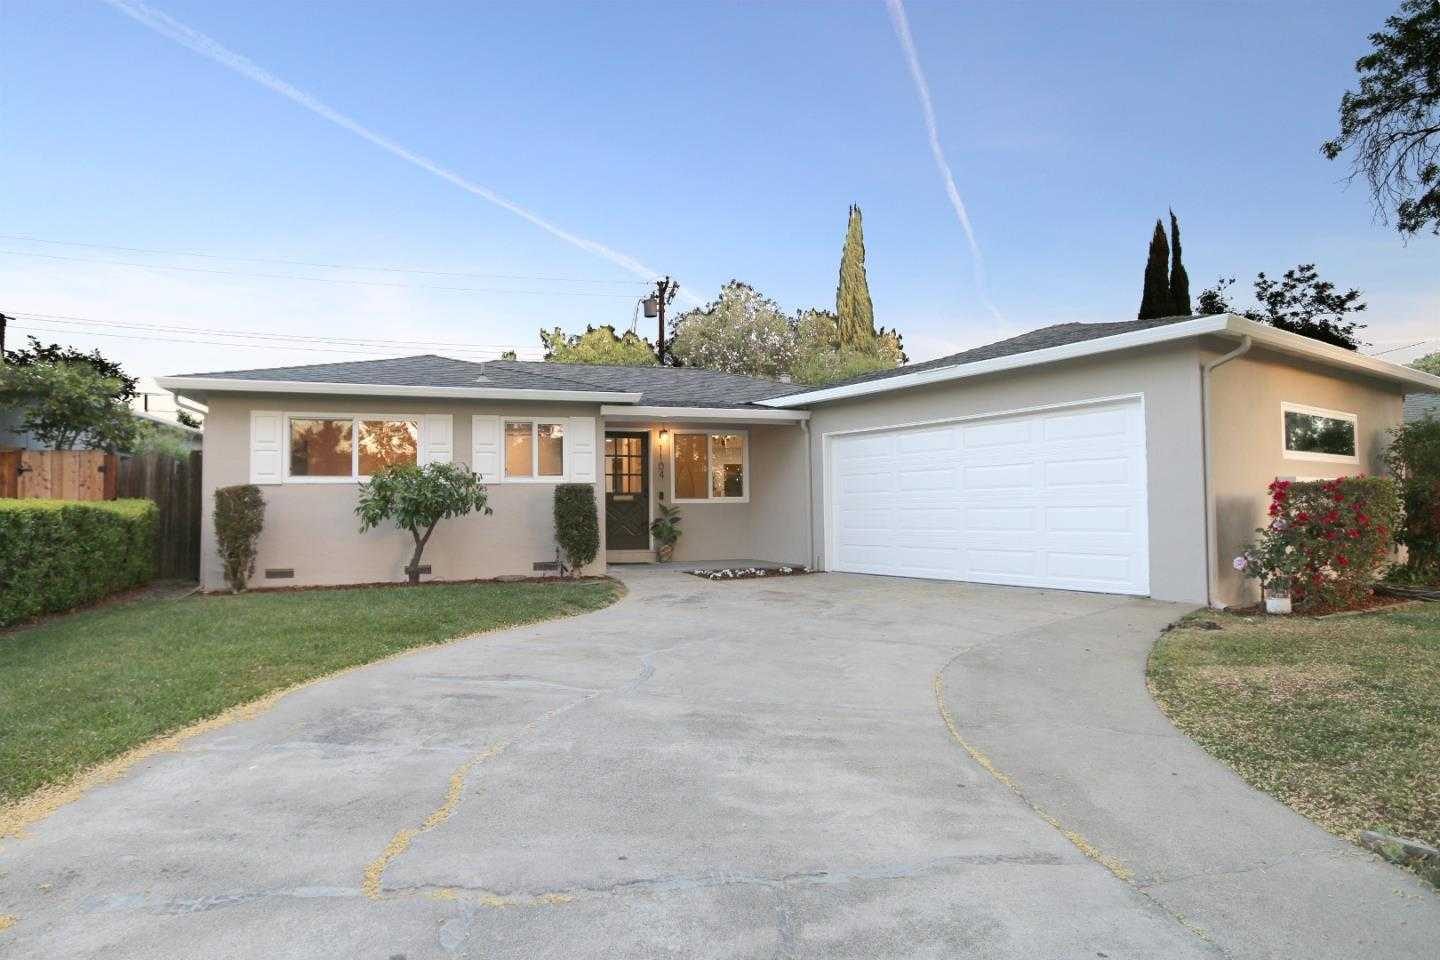 $1,995,000 - 3Br/2Ba -  for Sale in Mountain View